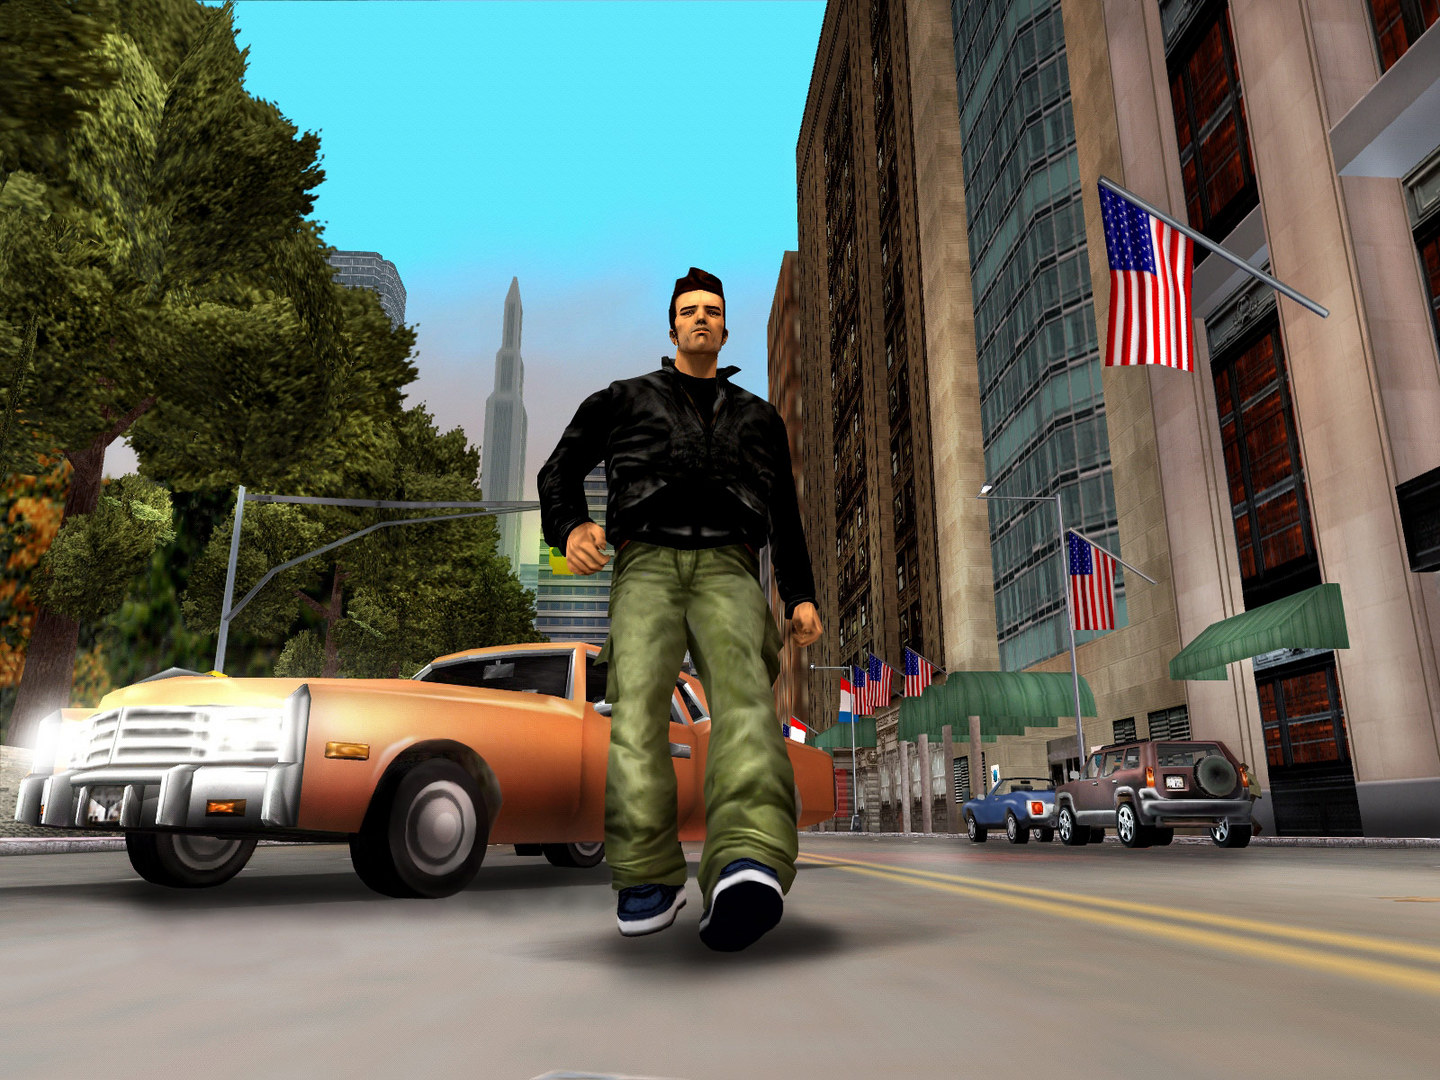 October 22, 2001: Grand Theft Auto III Shifts the Landscape of Gaming